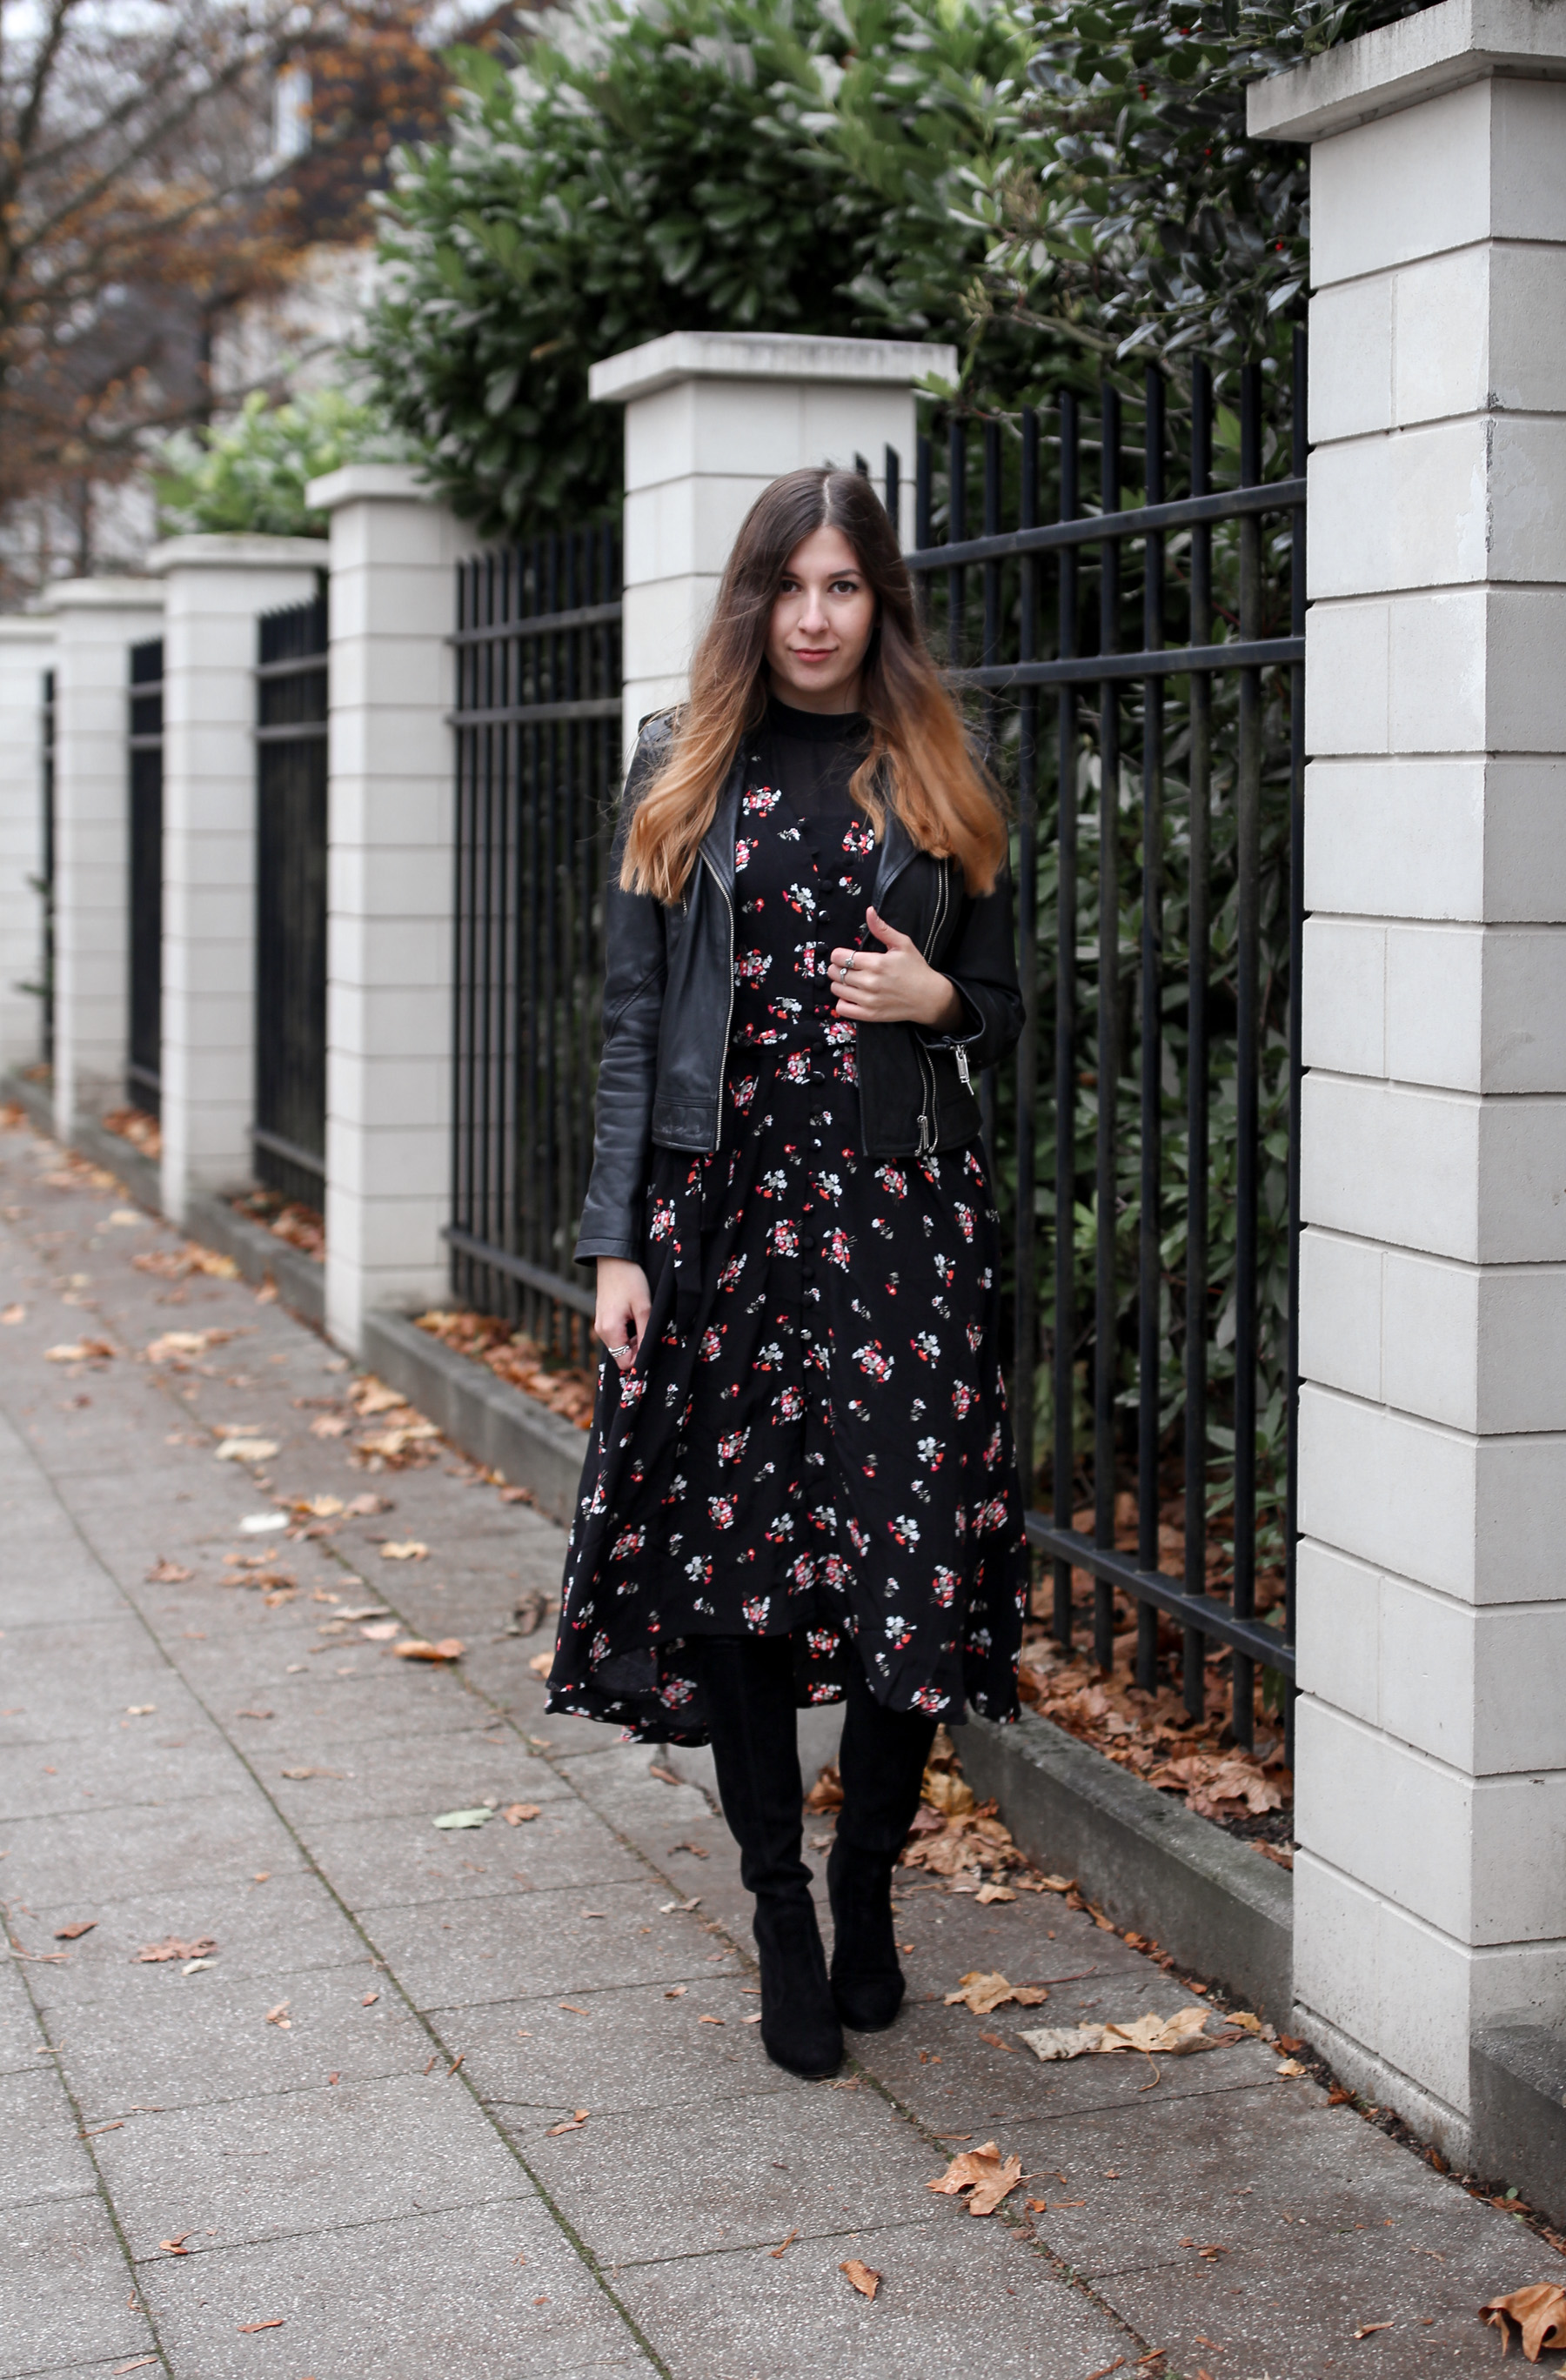 feminines outfit, herbst, blümchen kleid, floral, maxi, dress, boots, fashionblog, fashion